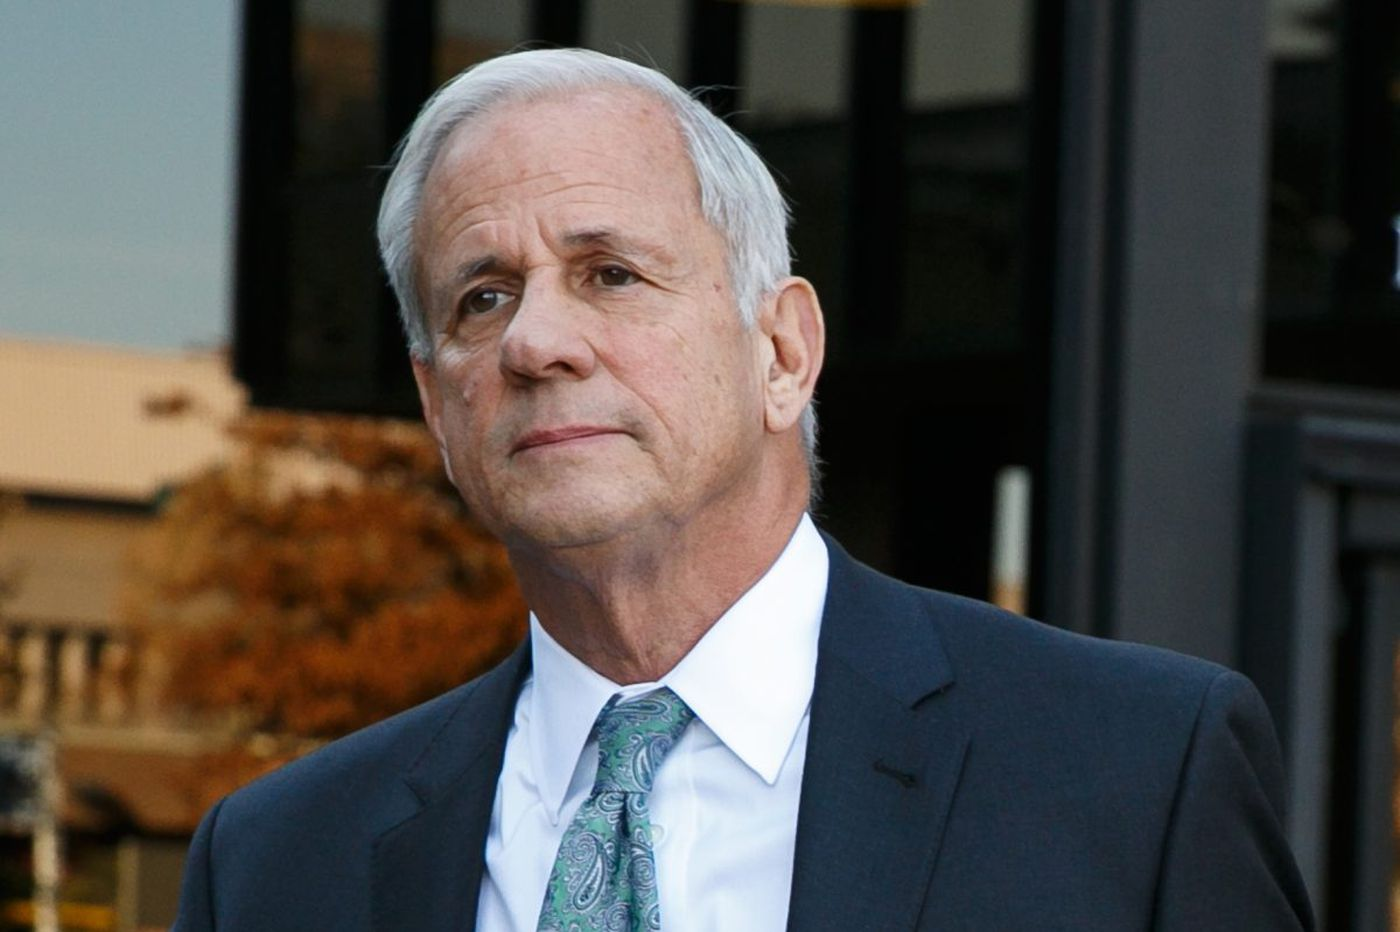 Lawyer who helped top payday lenders prey on financially desperate is sentenced to 8 years in prison